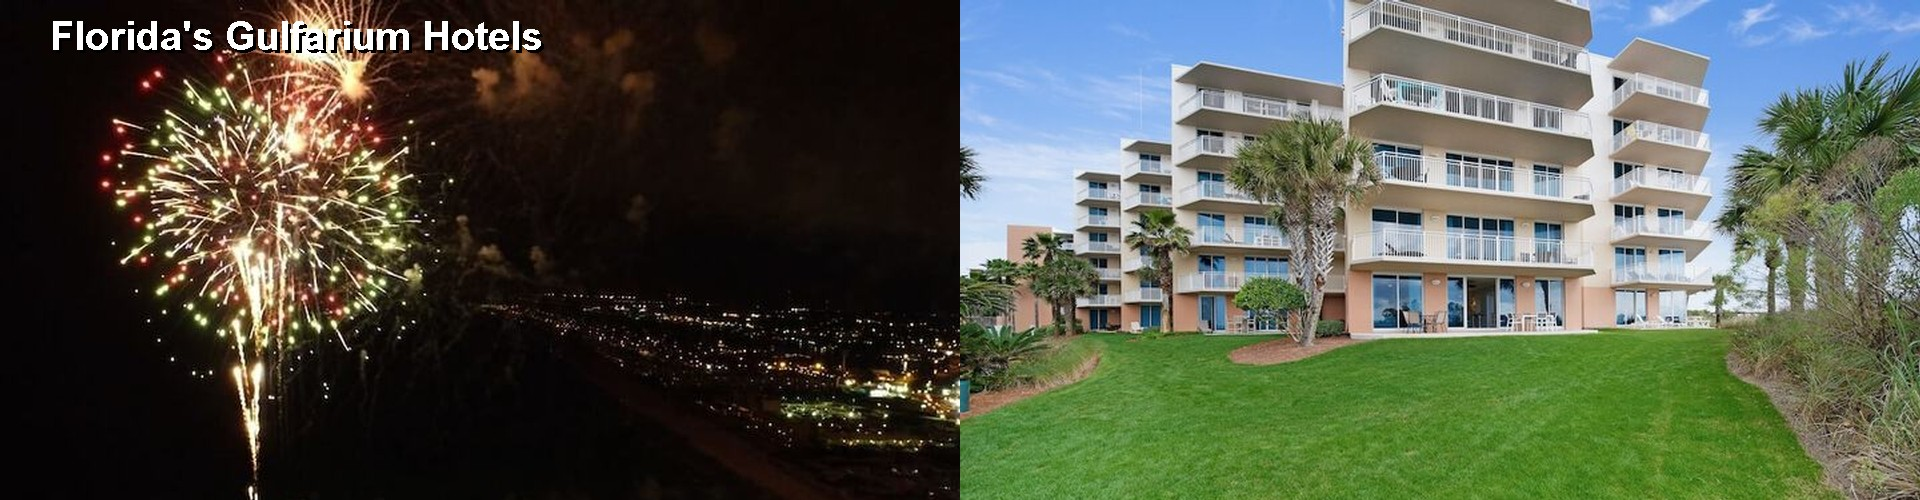 5 Best Hotels near Florida's Gulfarium